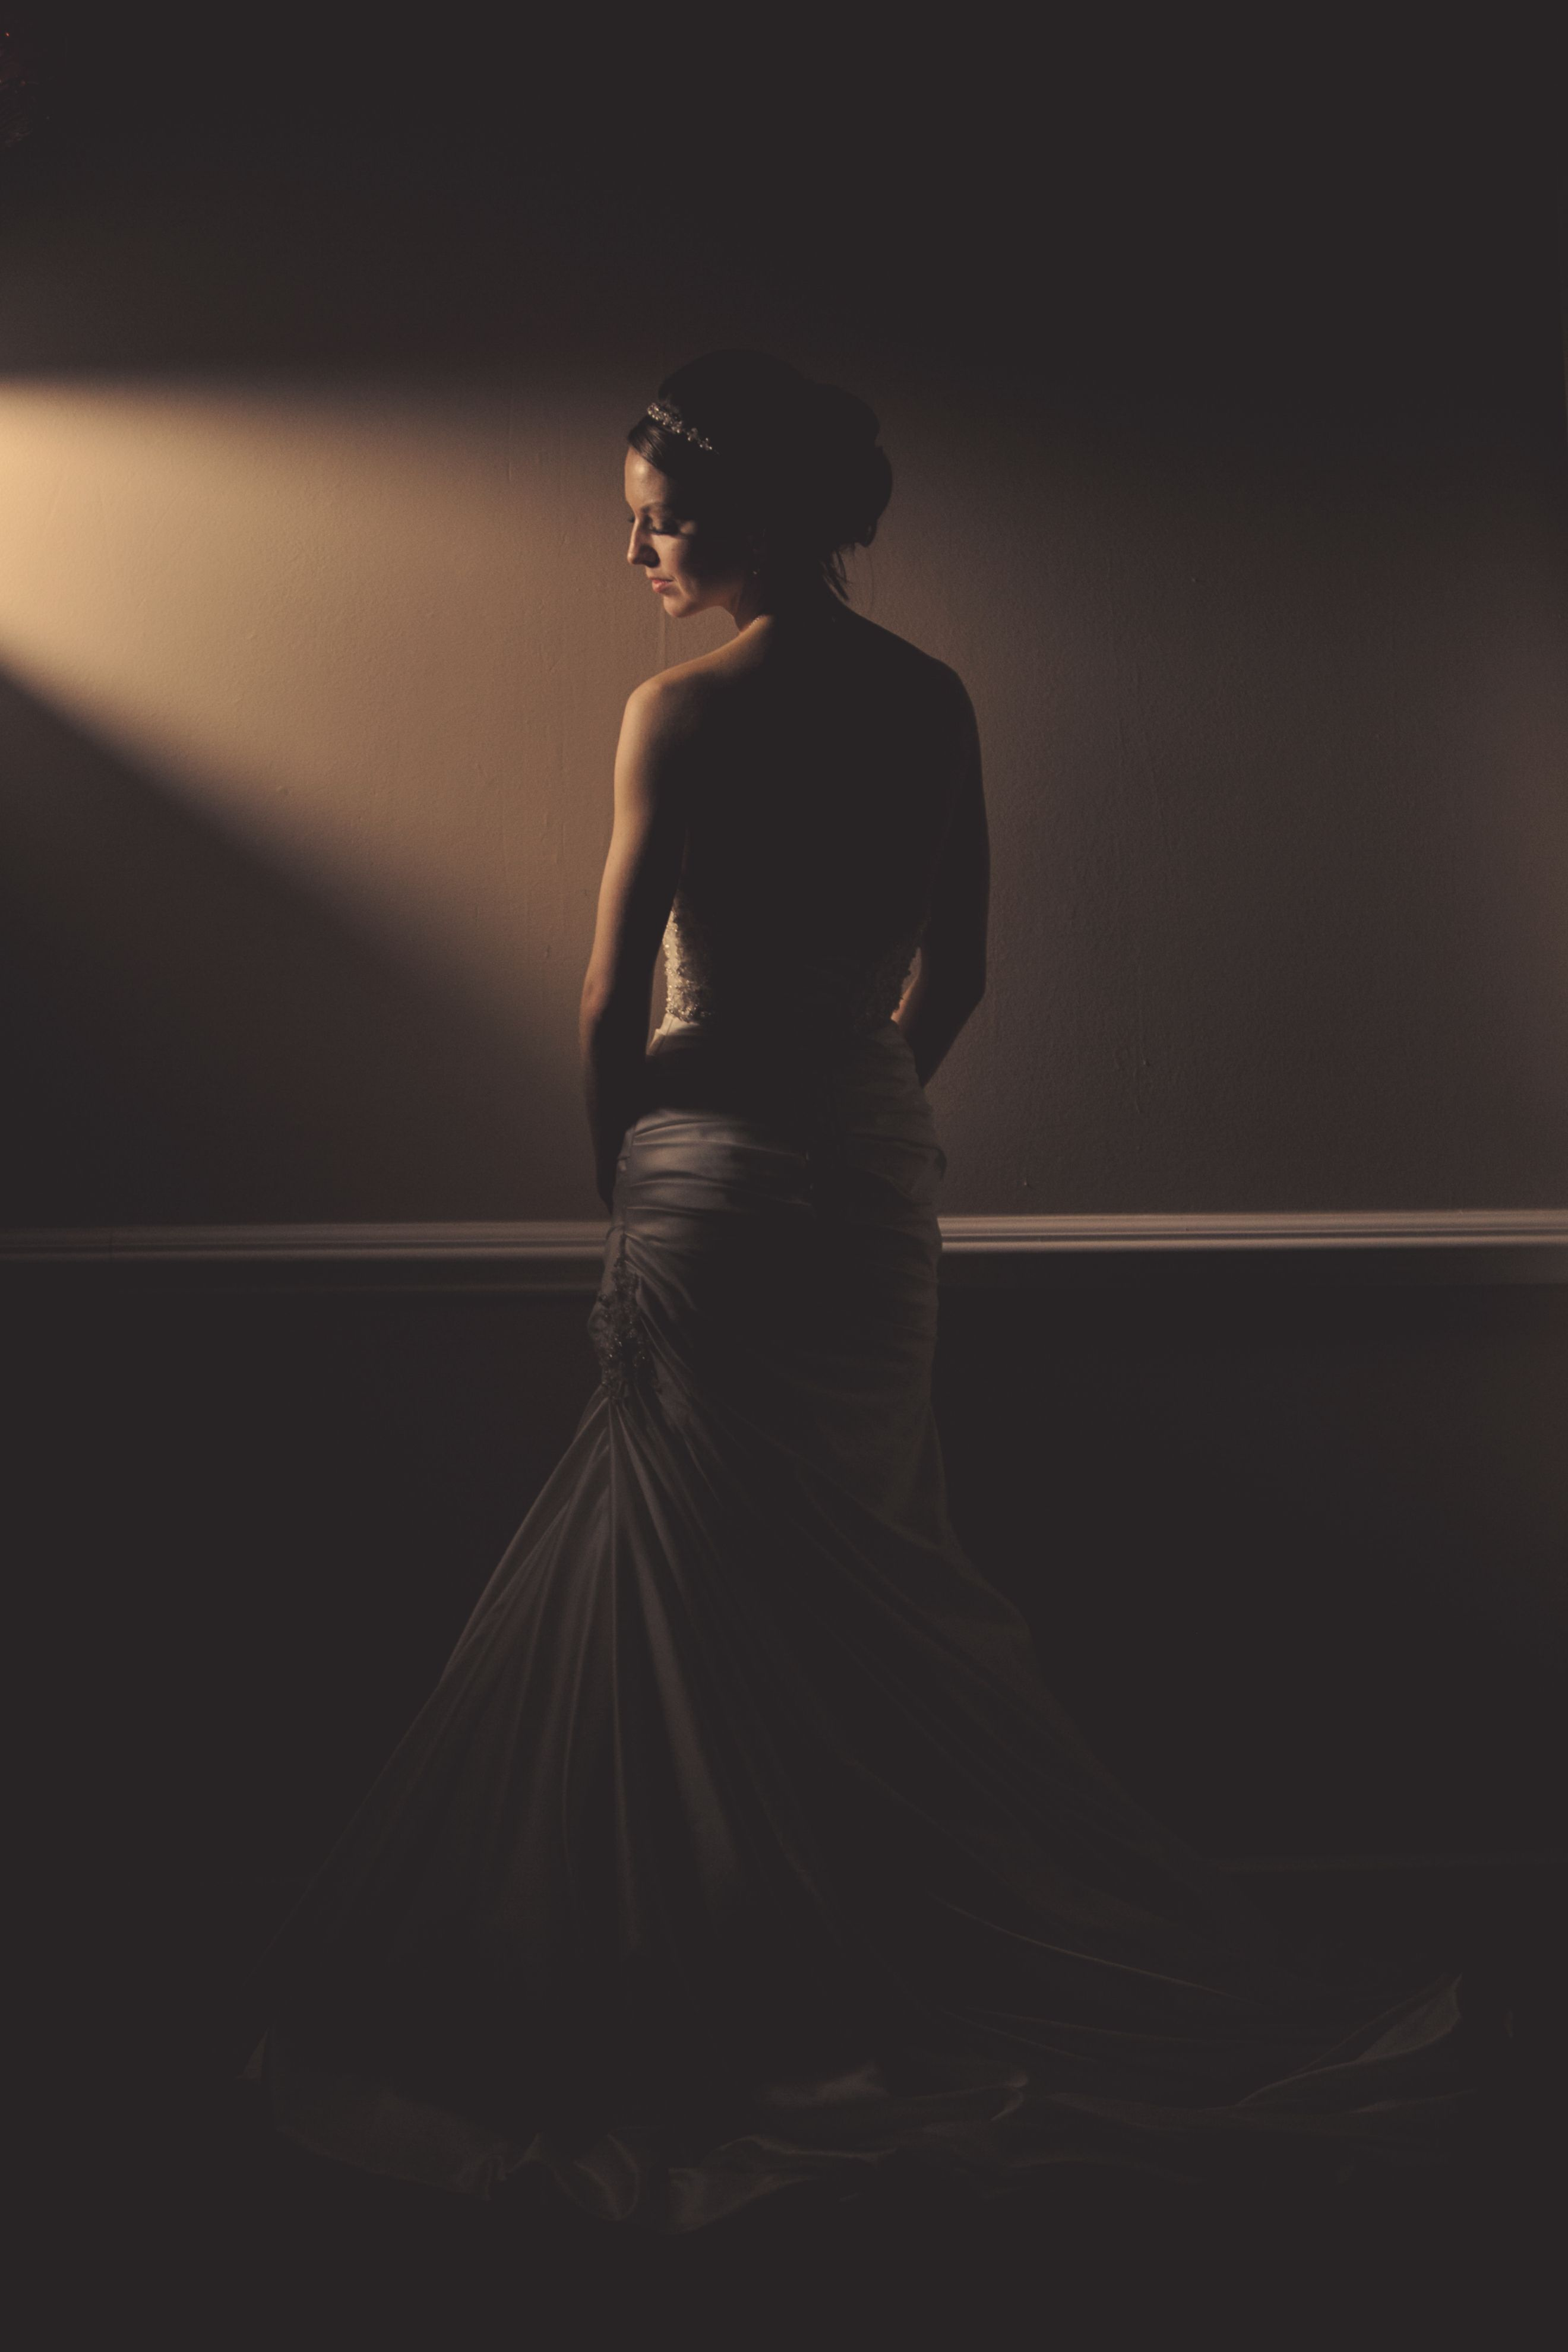 Great Silhouette shot using Westcott Icelight and barn doors